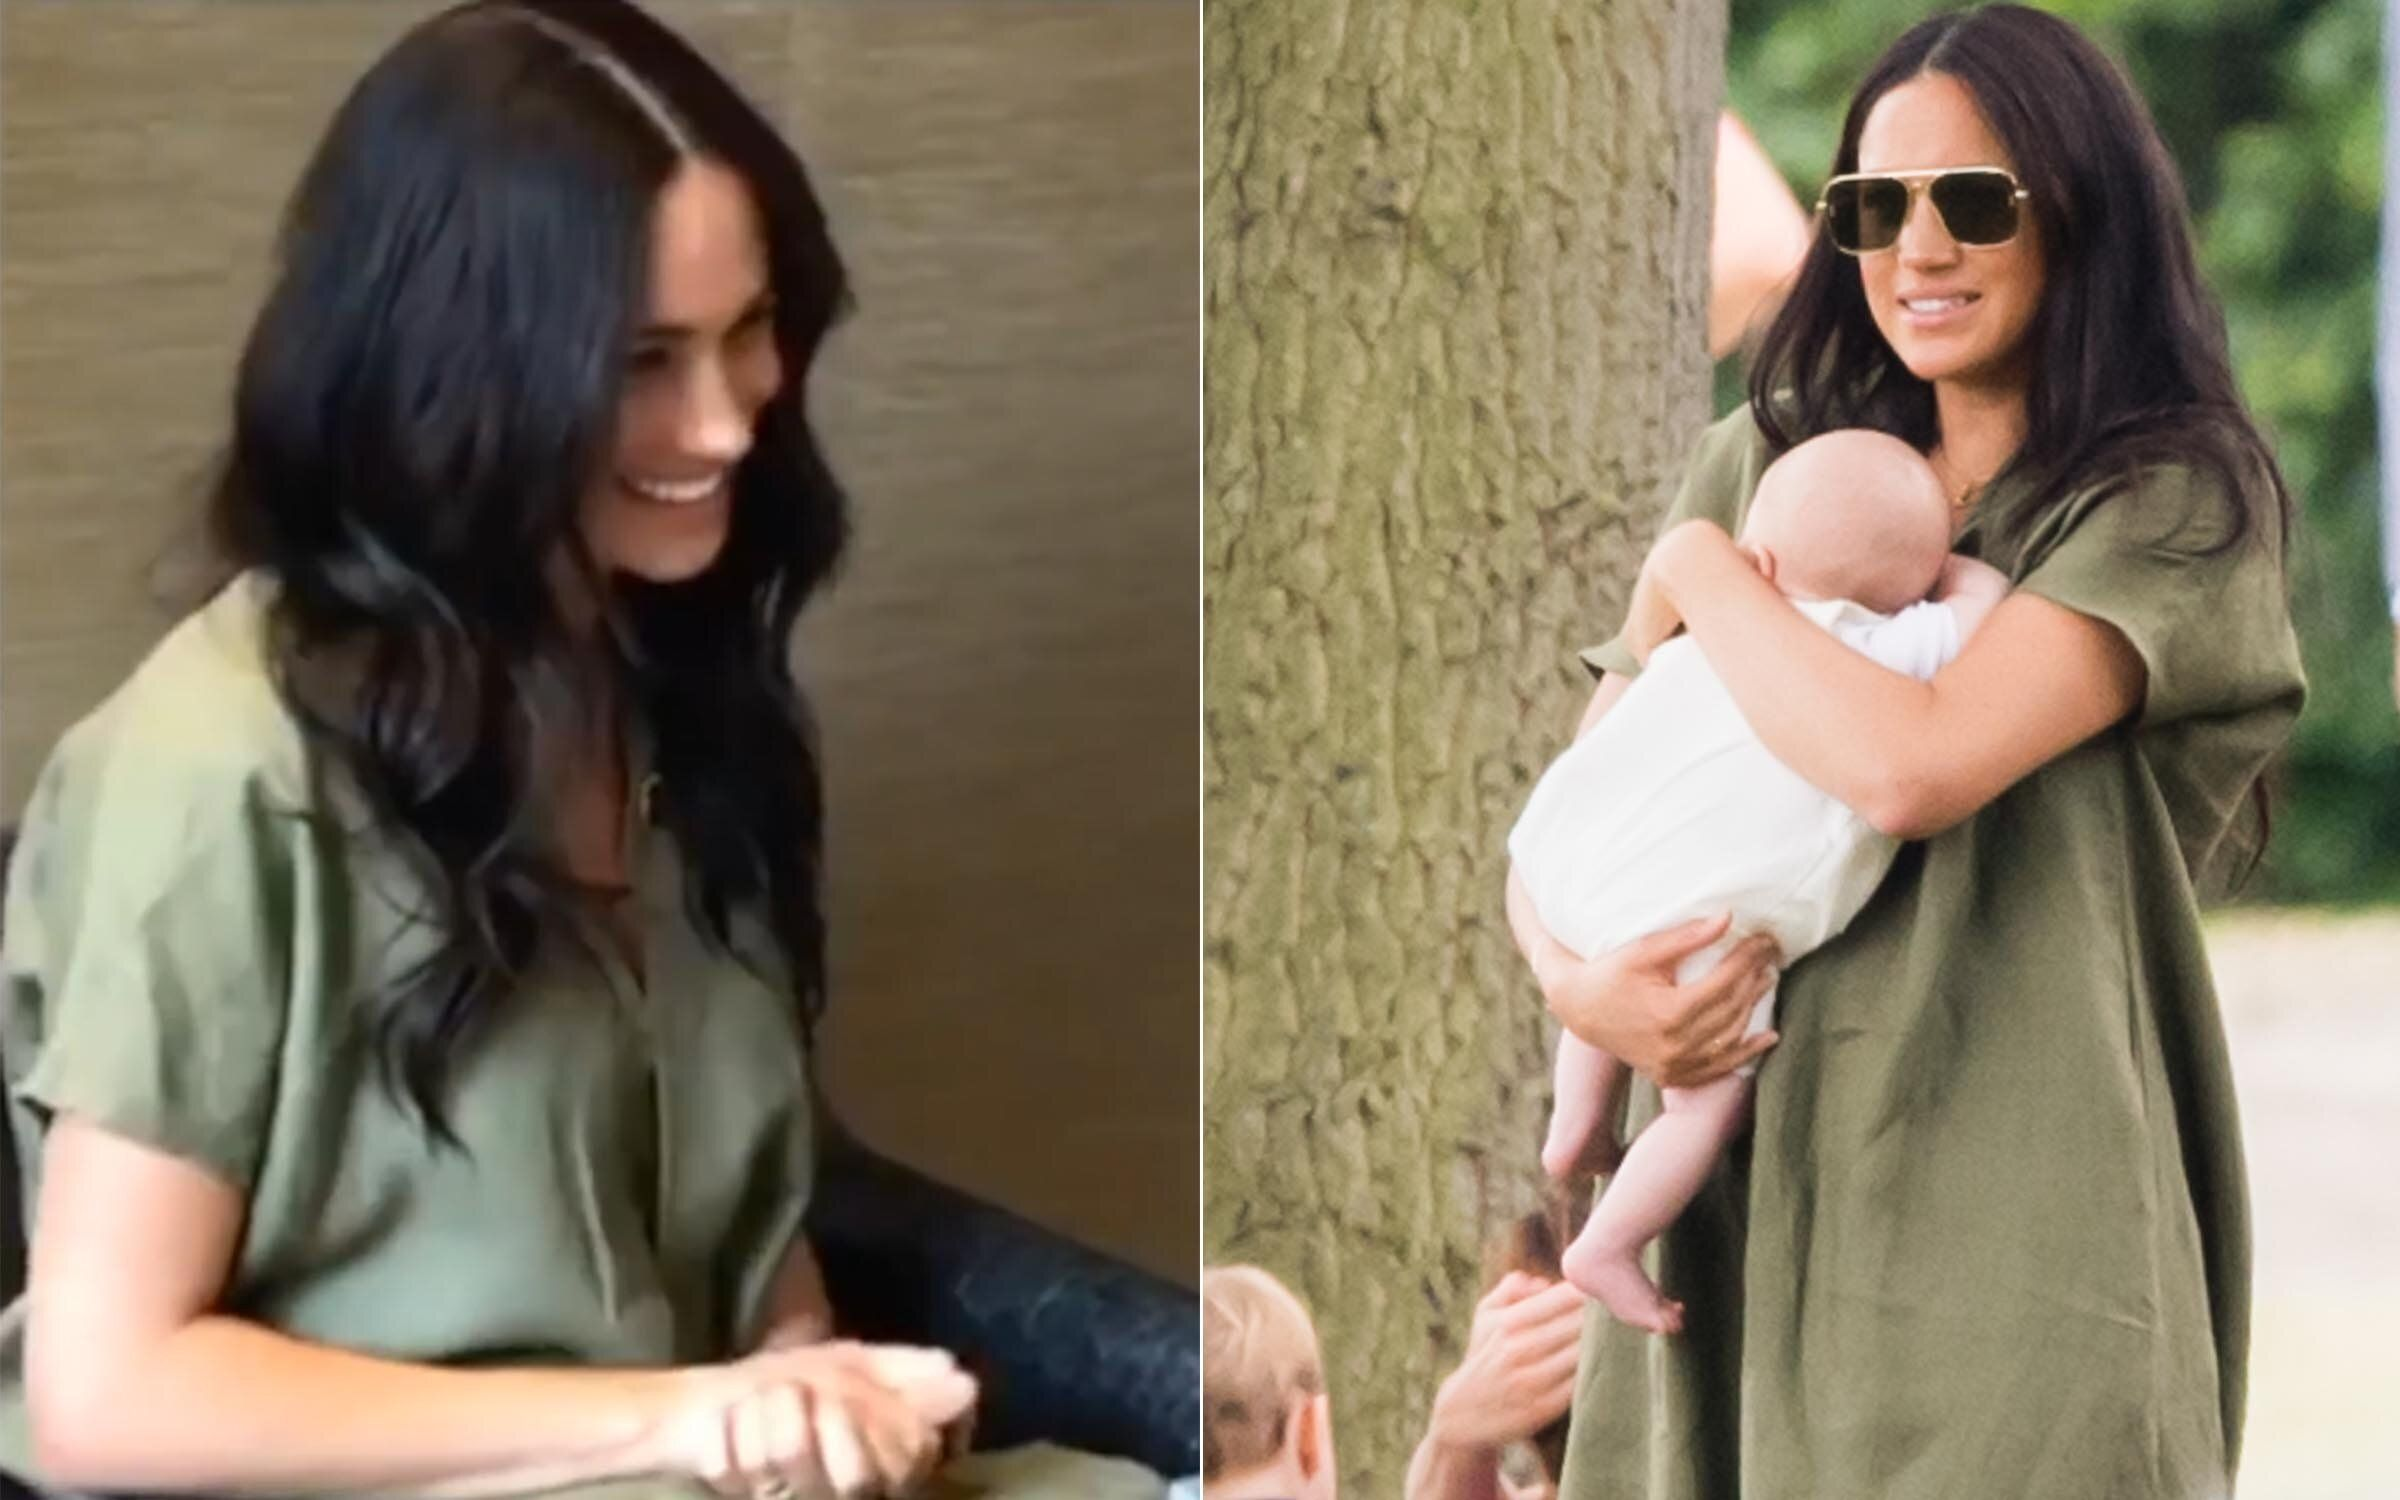 (Left) Meghan on a Skype call with the Nalikule College of Education on Sept. 29, 2019. (Right) The Duchess of Sussex at